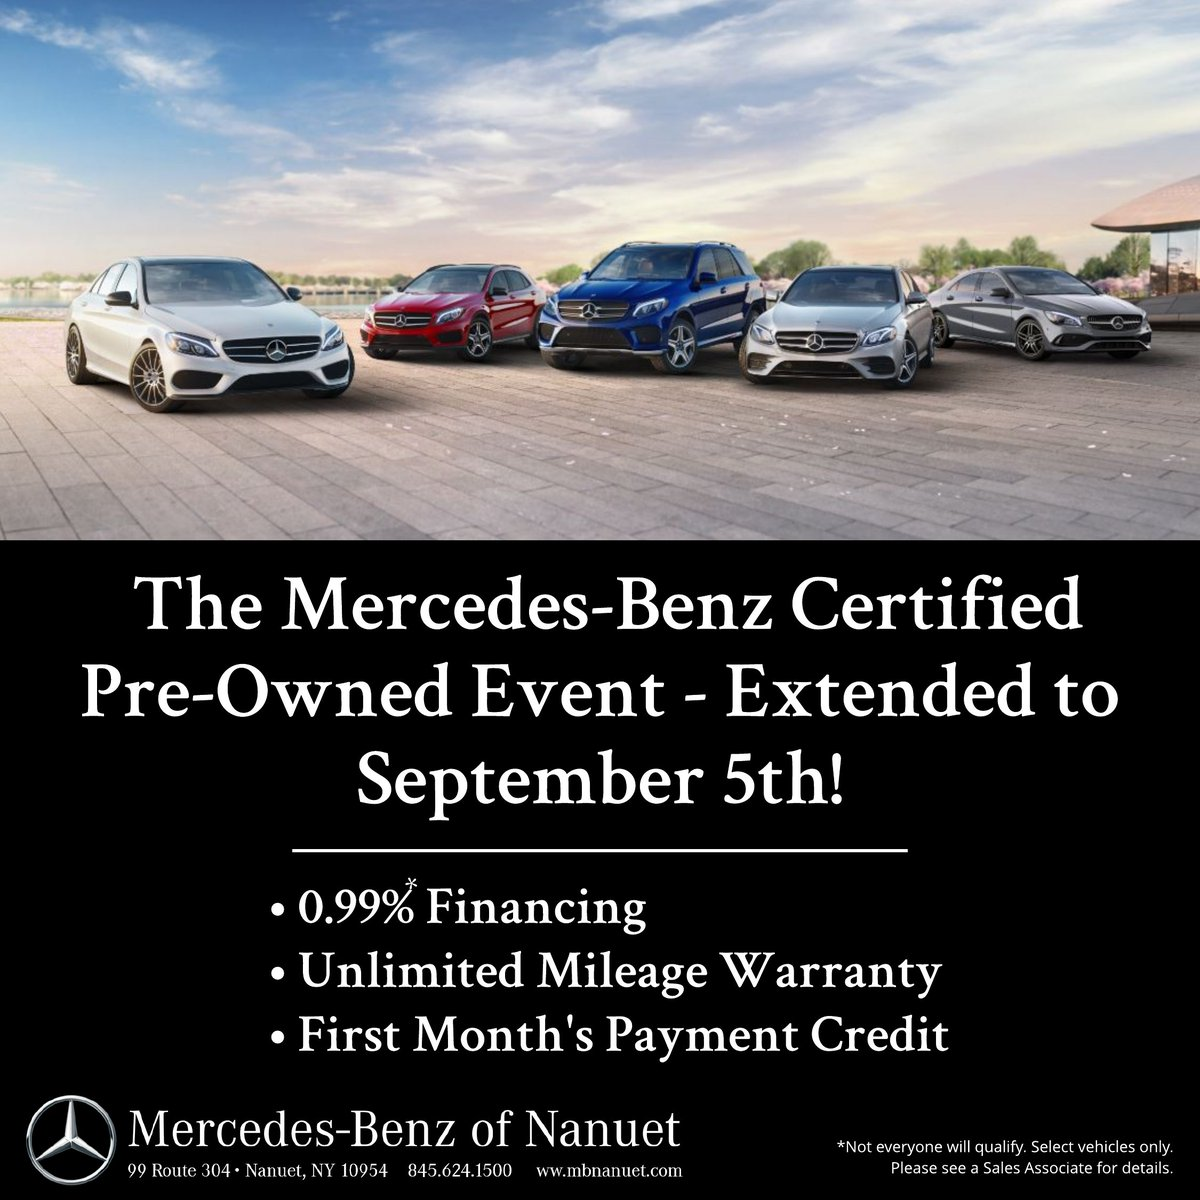 Delightful Stop In Today To Find The Perfect Mercedes Benz For You!  Http://ow.ly/i9FV50iprXX Pic.twitter.com/orRbyrCWmn